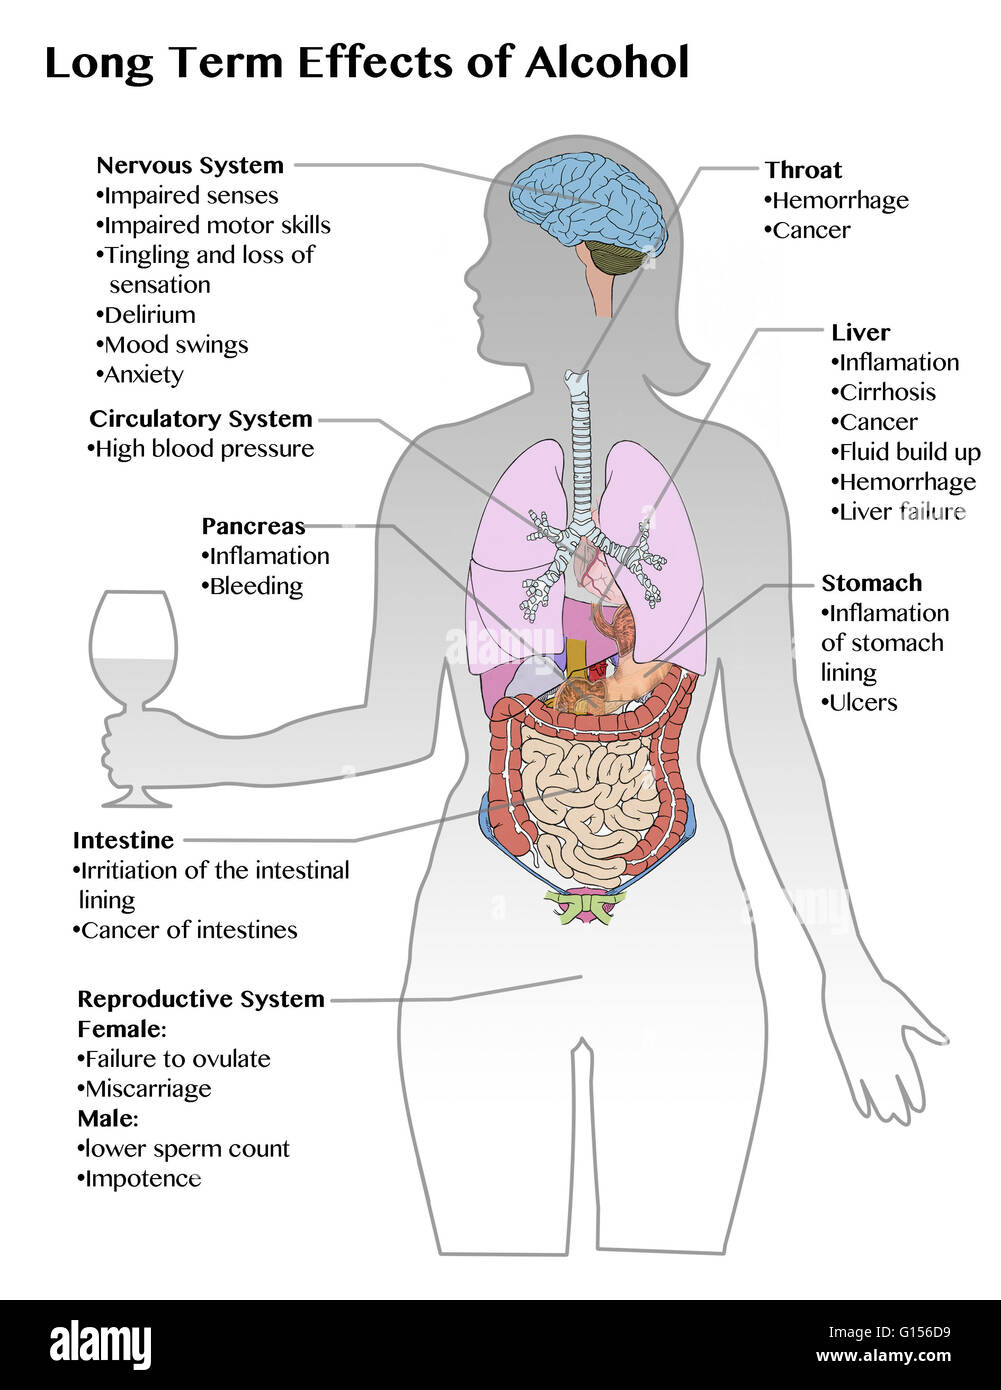 the effects of excessive alcohol on a persons behavior Drinking massive amounts of alcohol has numerous negative effects on the human body like, headaches, distorted vision and hearing, alcohol poisoning, high blood pressure, liver disease, and nerve damage, alcohol leads to addiction and can put people at a higher risk of over 200 disorders like tuberculosis and pneumonia (time 1.